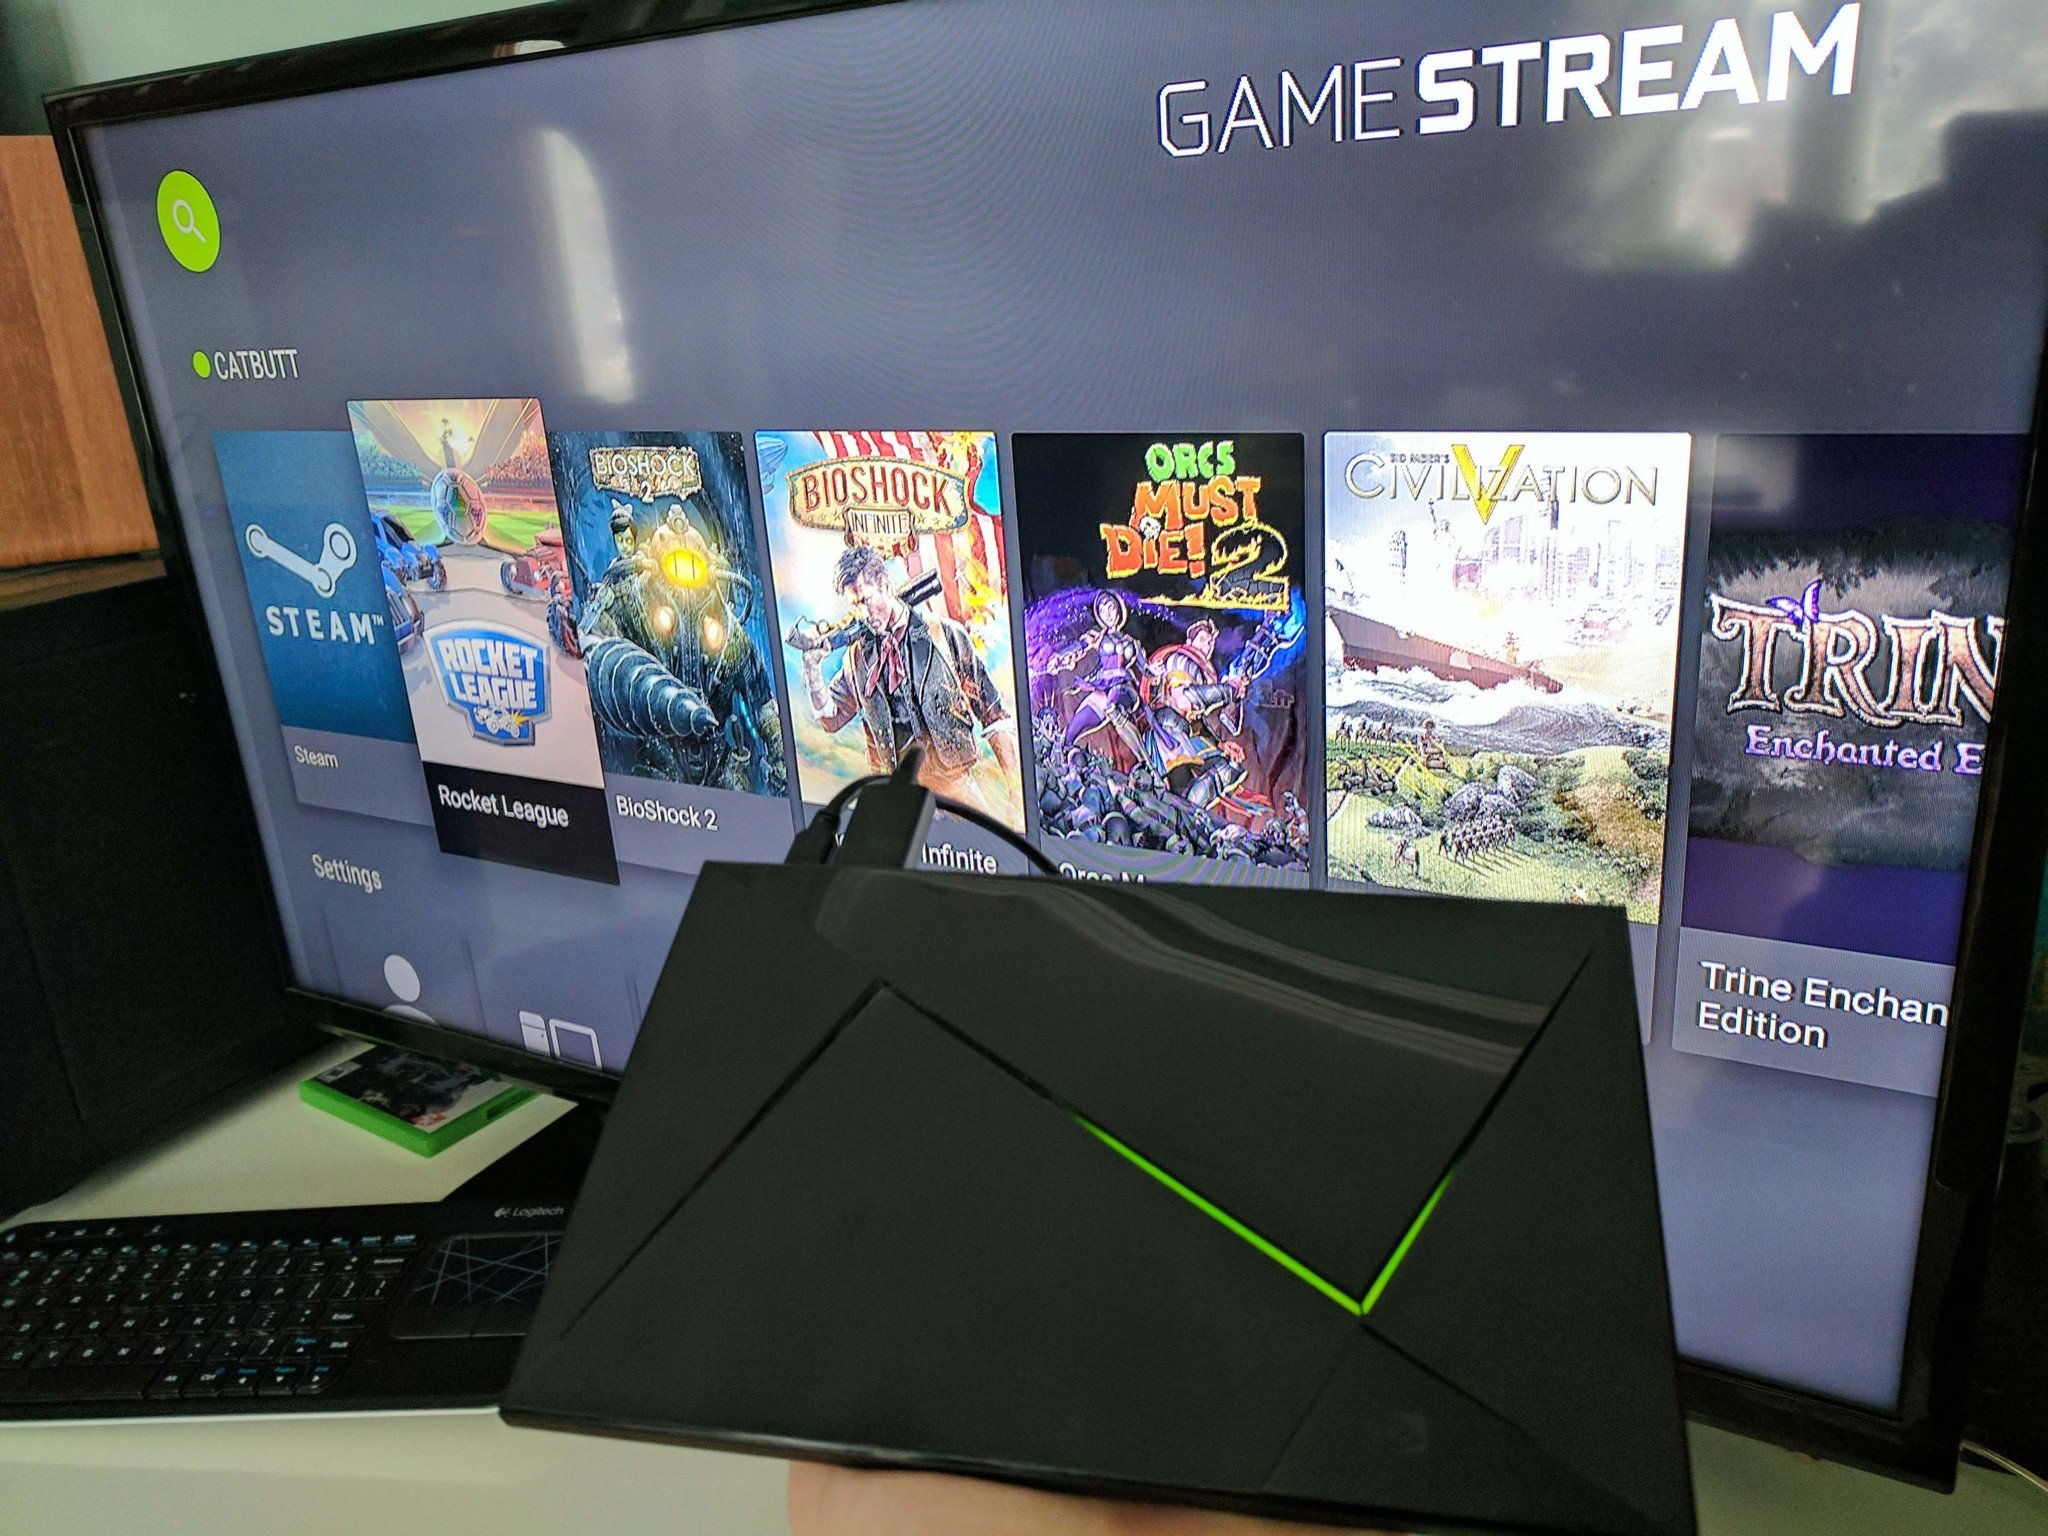 How To Set Up Gamestream On Your Nvidia Shield Tv